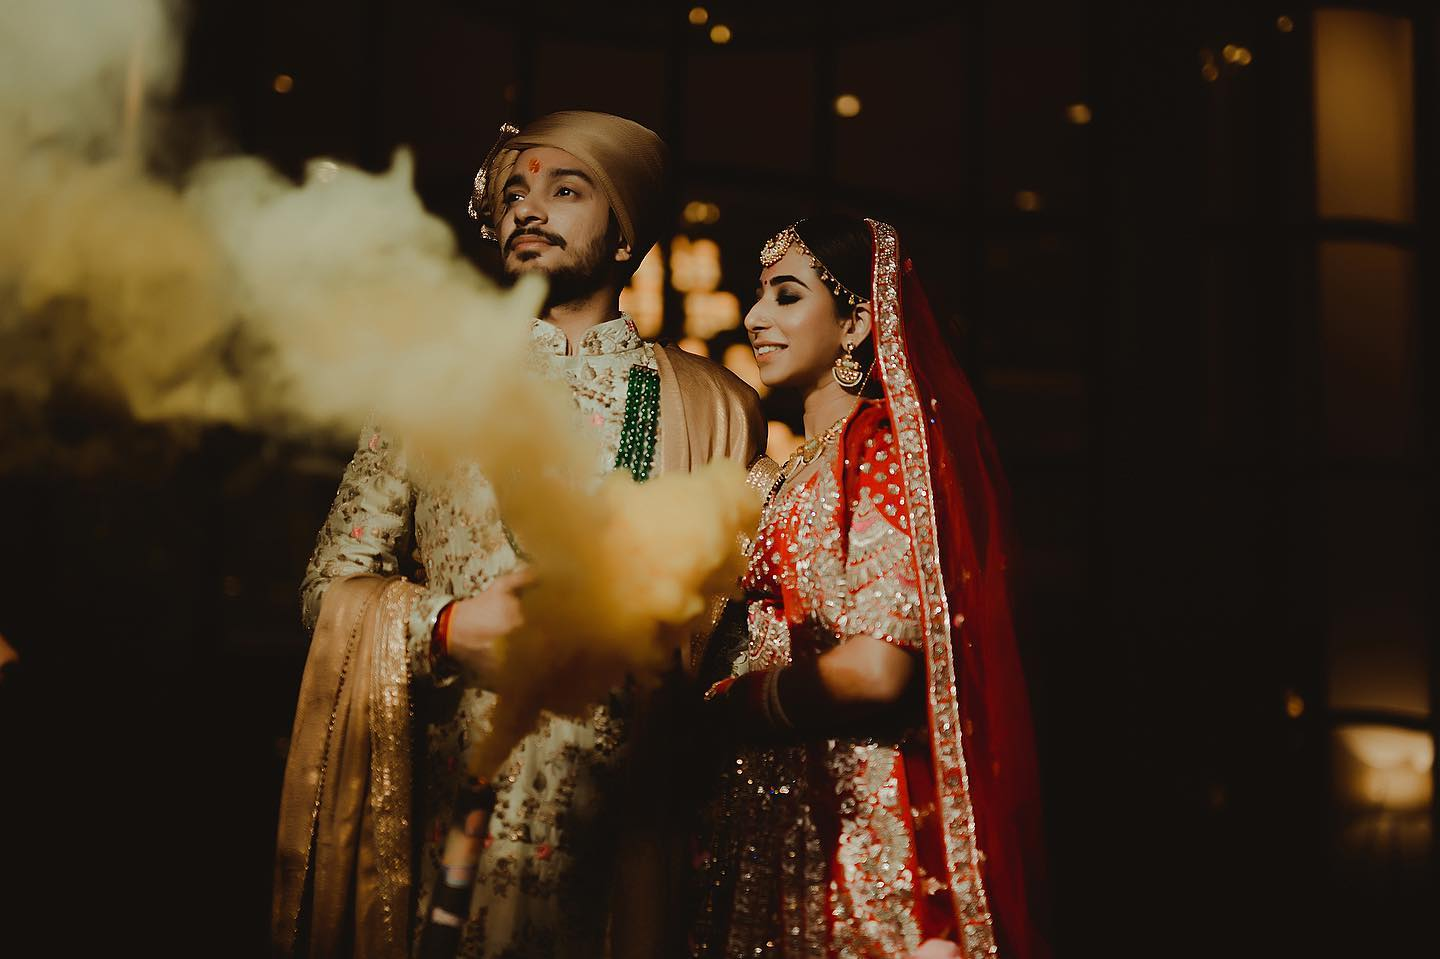 Beautiful candid picture of bride and groom